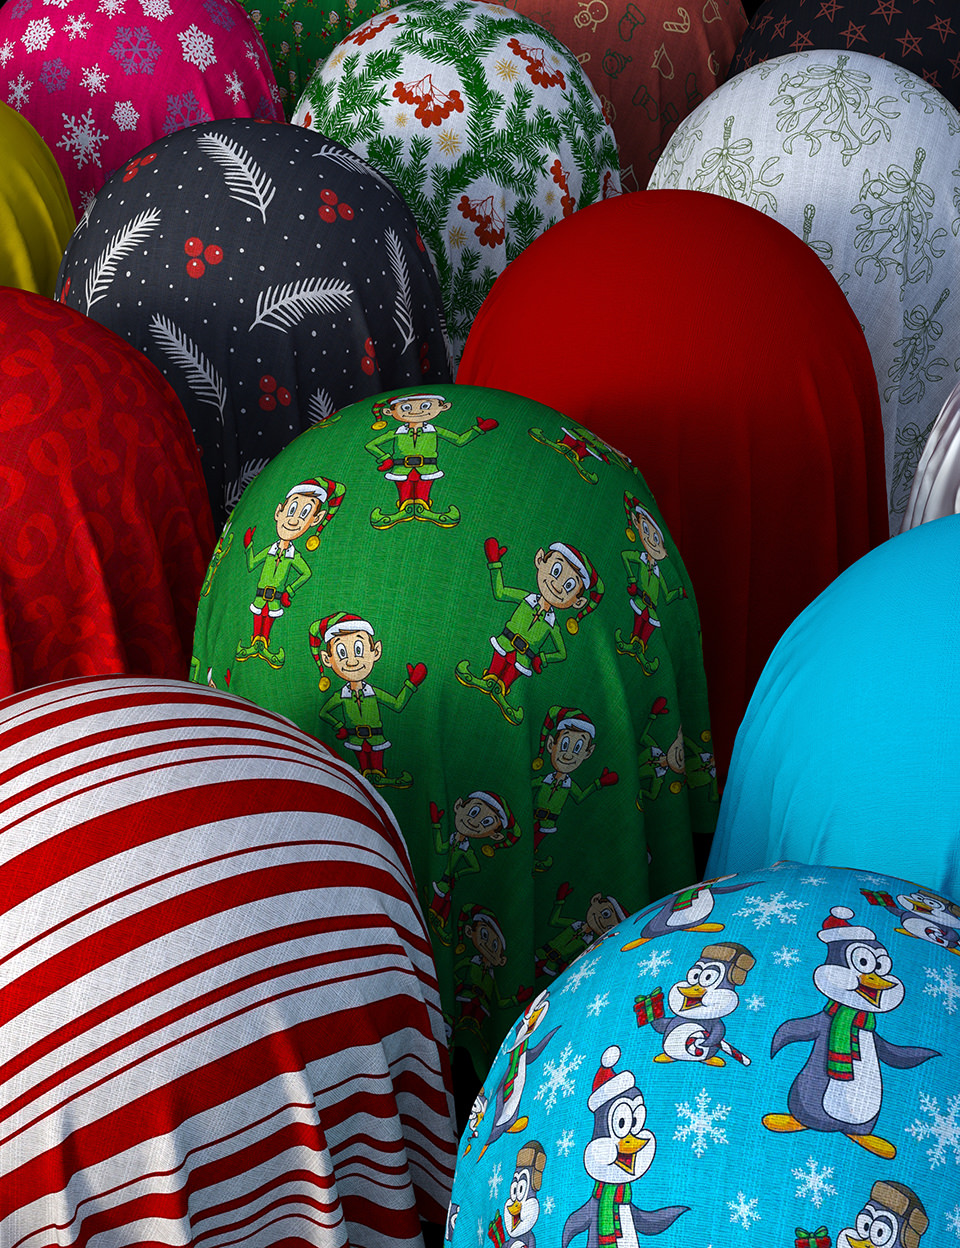 Christmas Cotton Fabric Iray Shaders by: Nelmi, 3D Models by Daz 3D